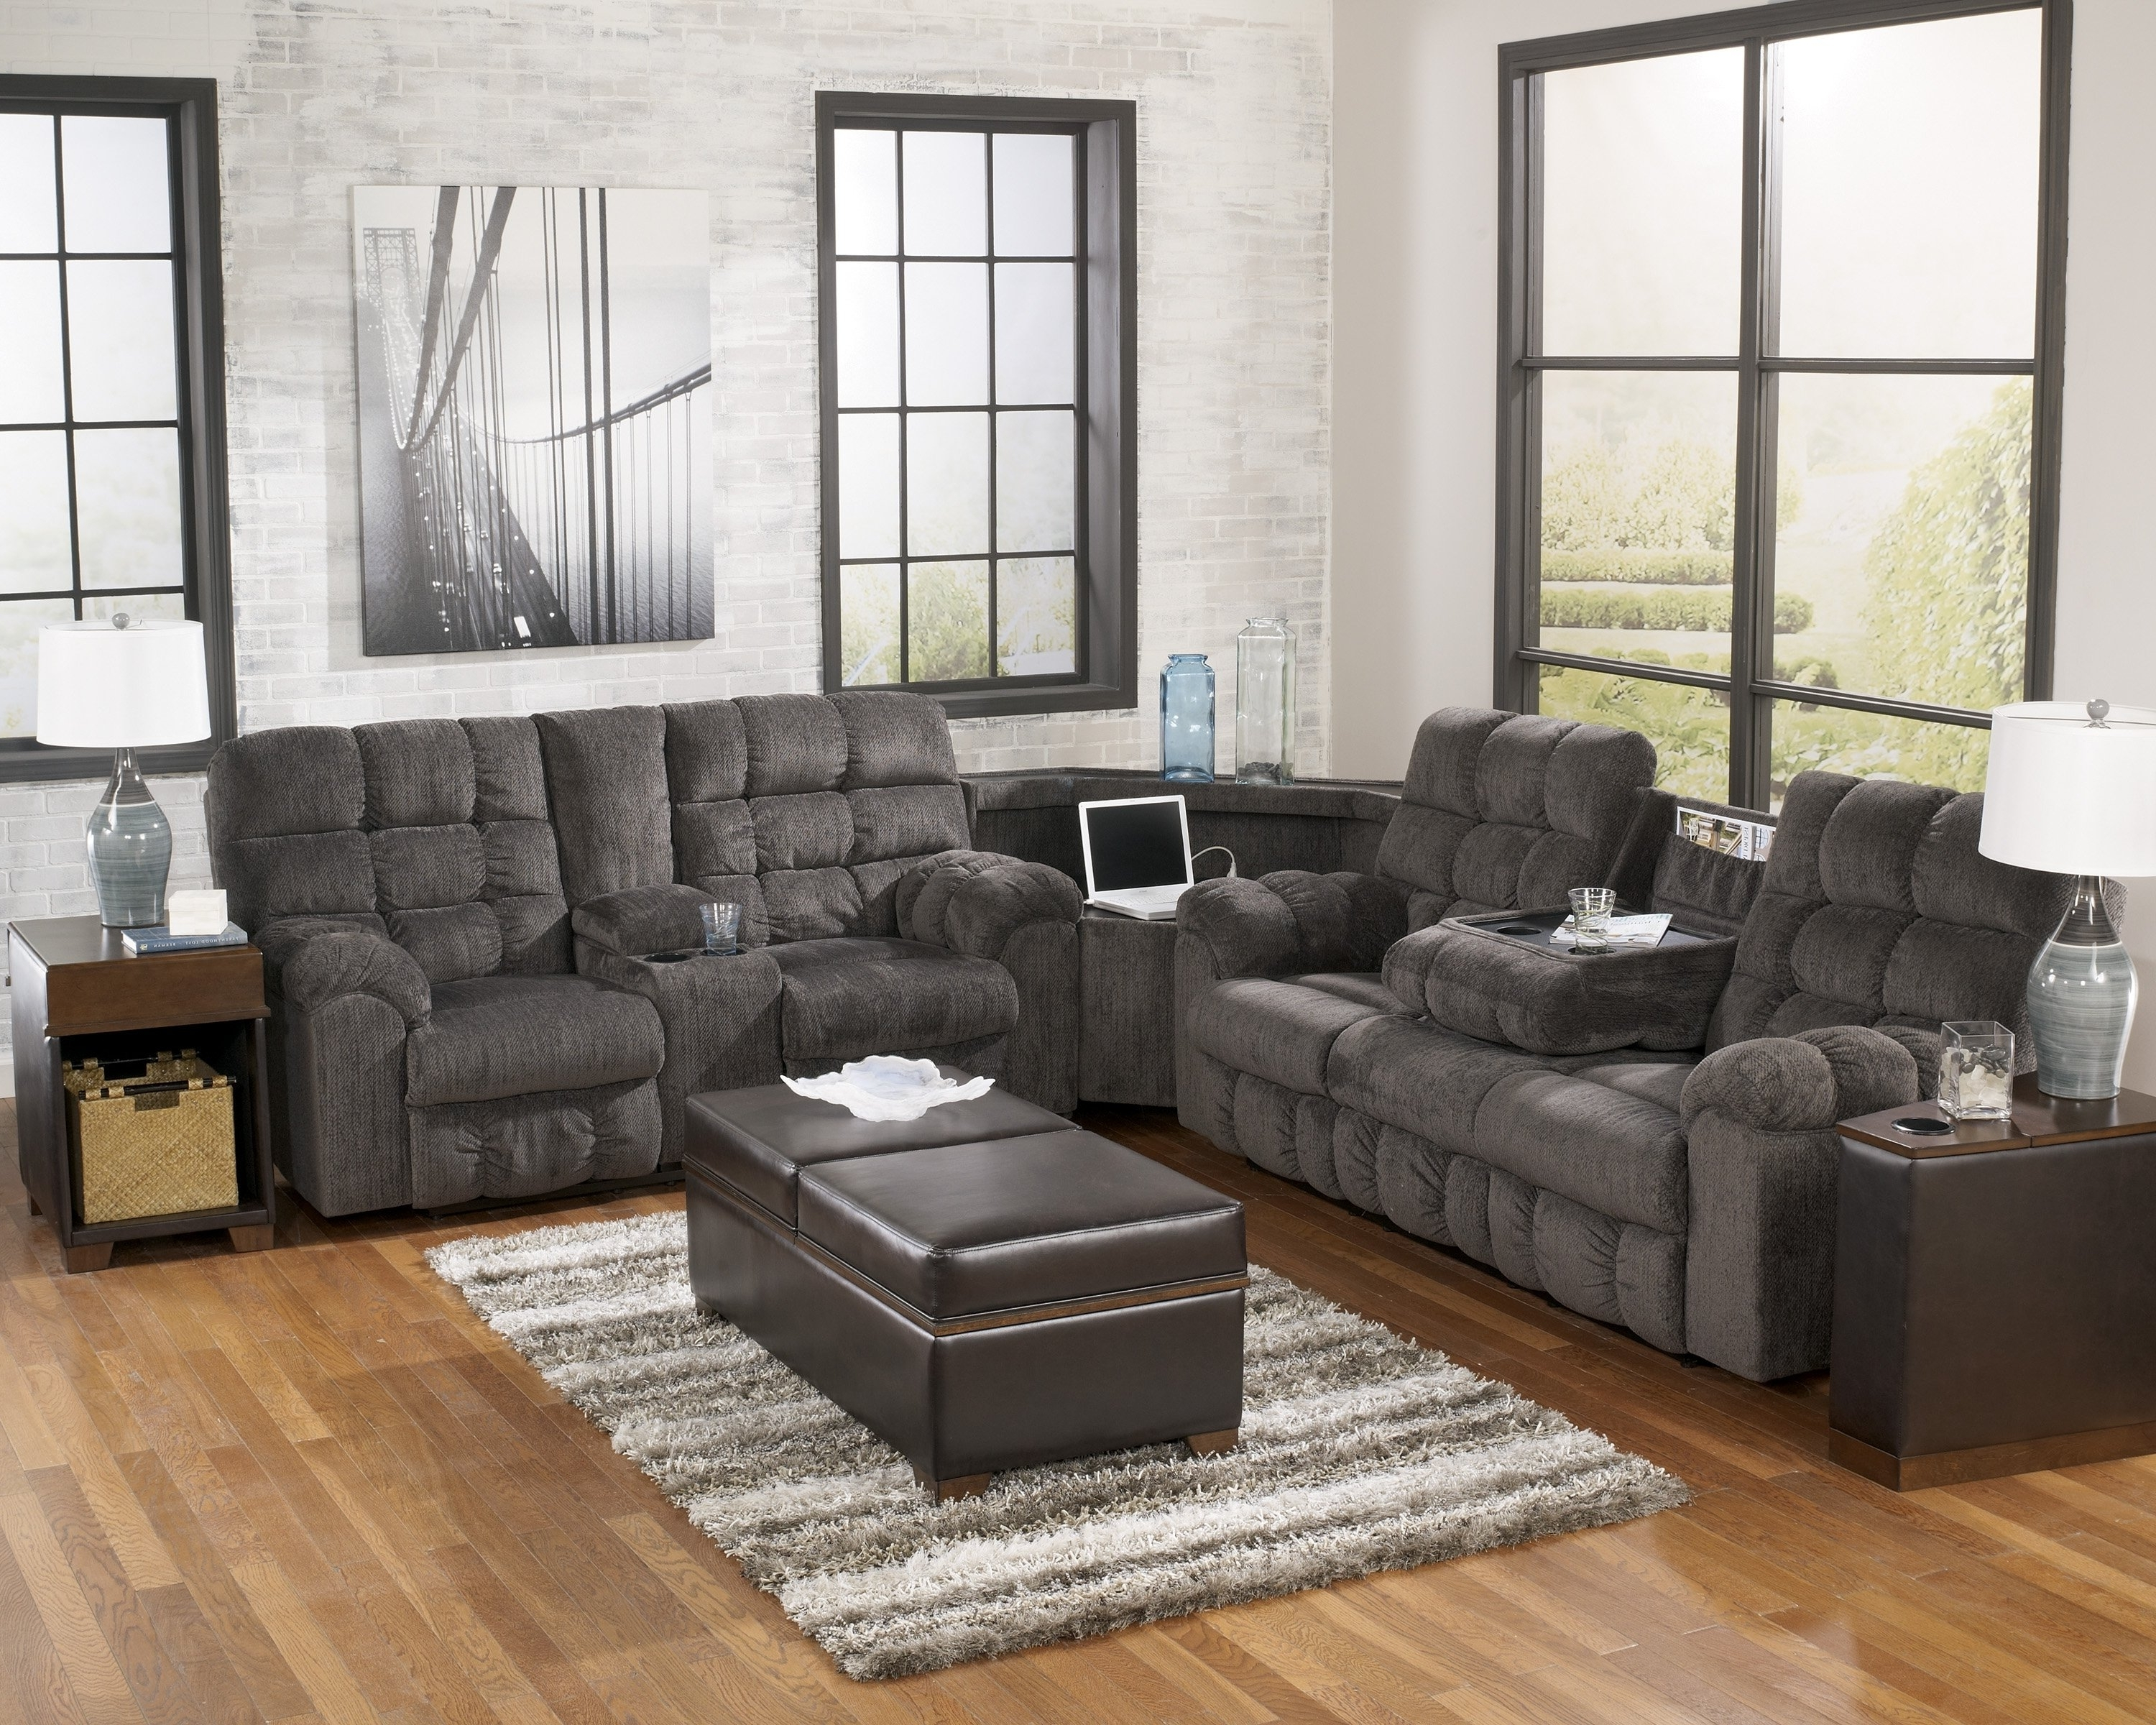 Sofas Center Sectional Sofas Ashley Furniture Excellent Faux For Inside Recent Sectional Sofas At Ashley (View 5 of 20)